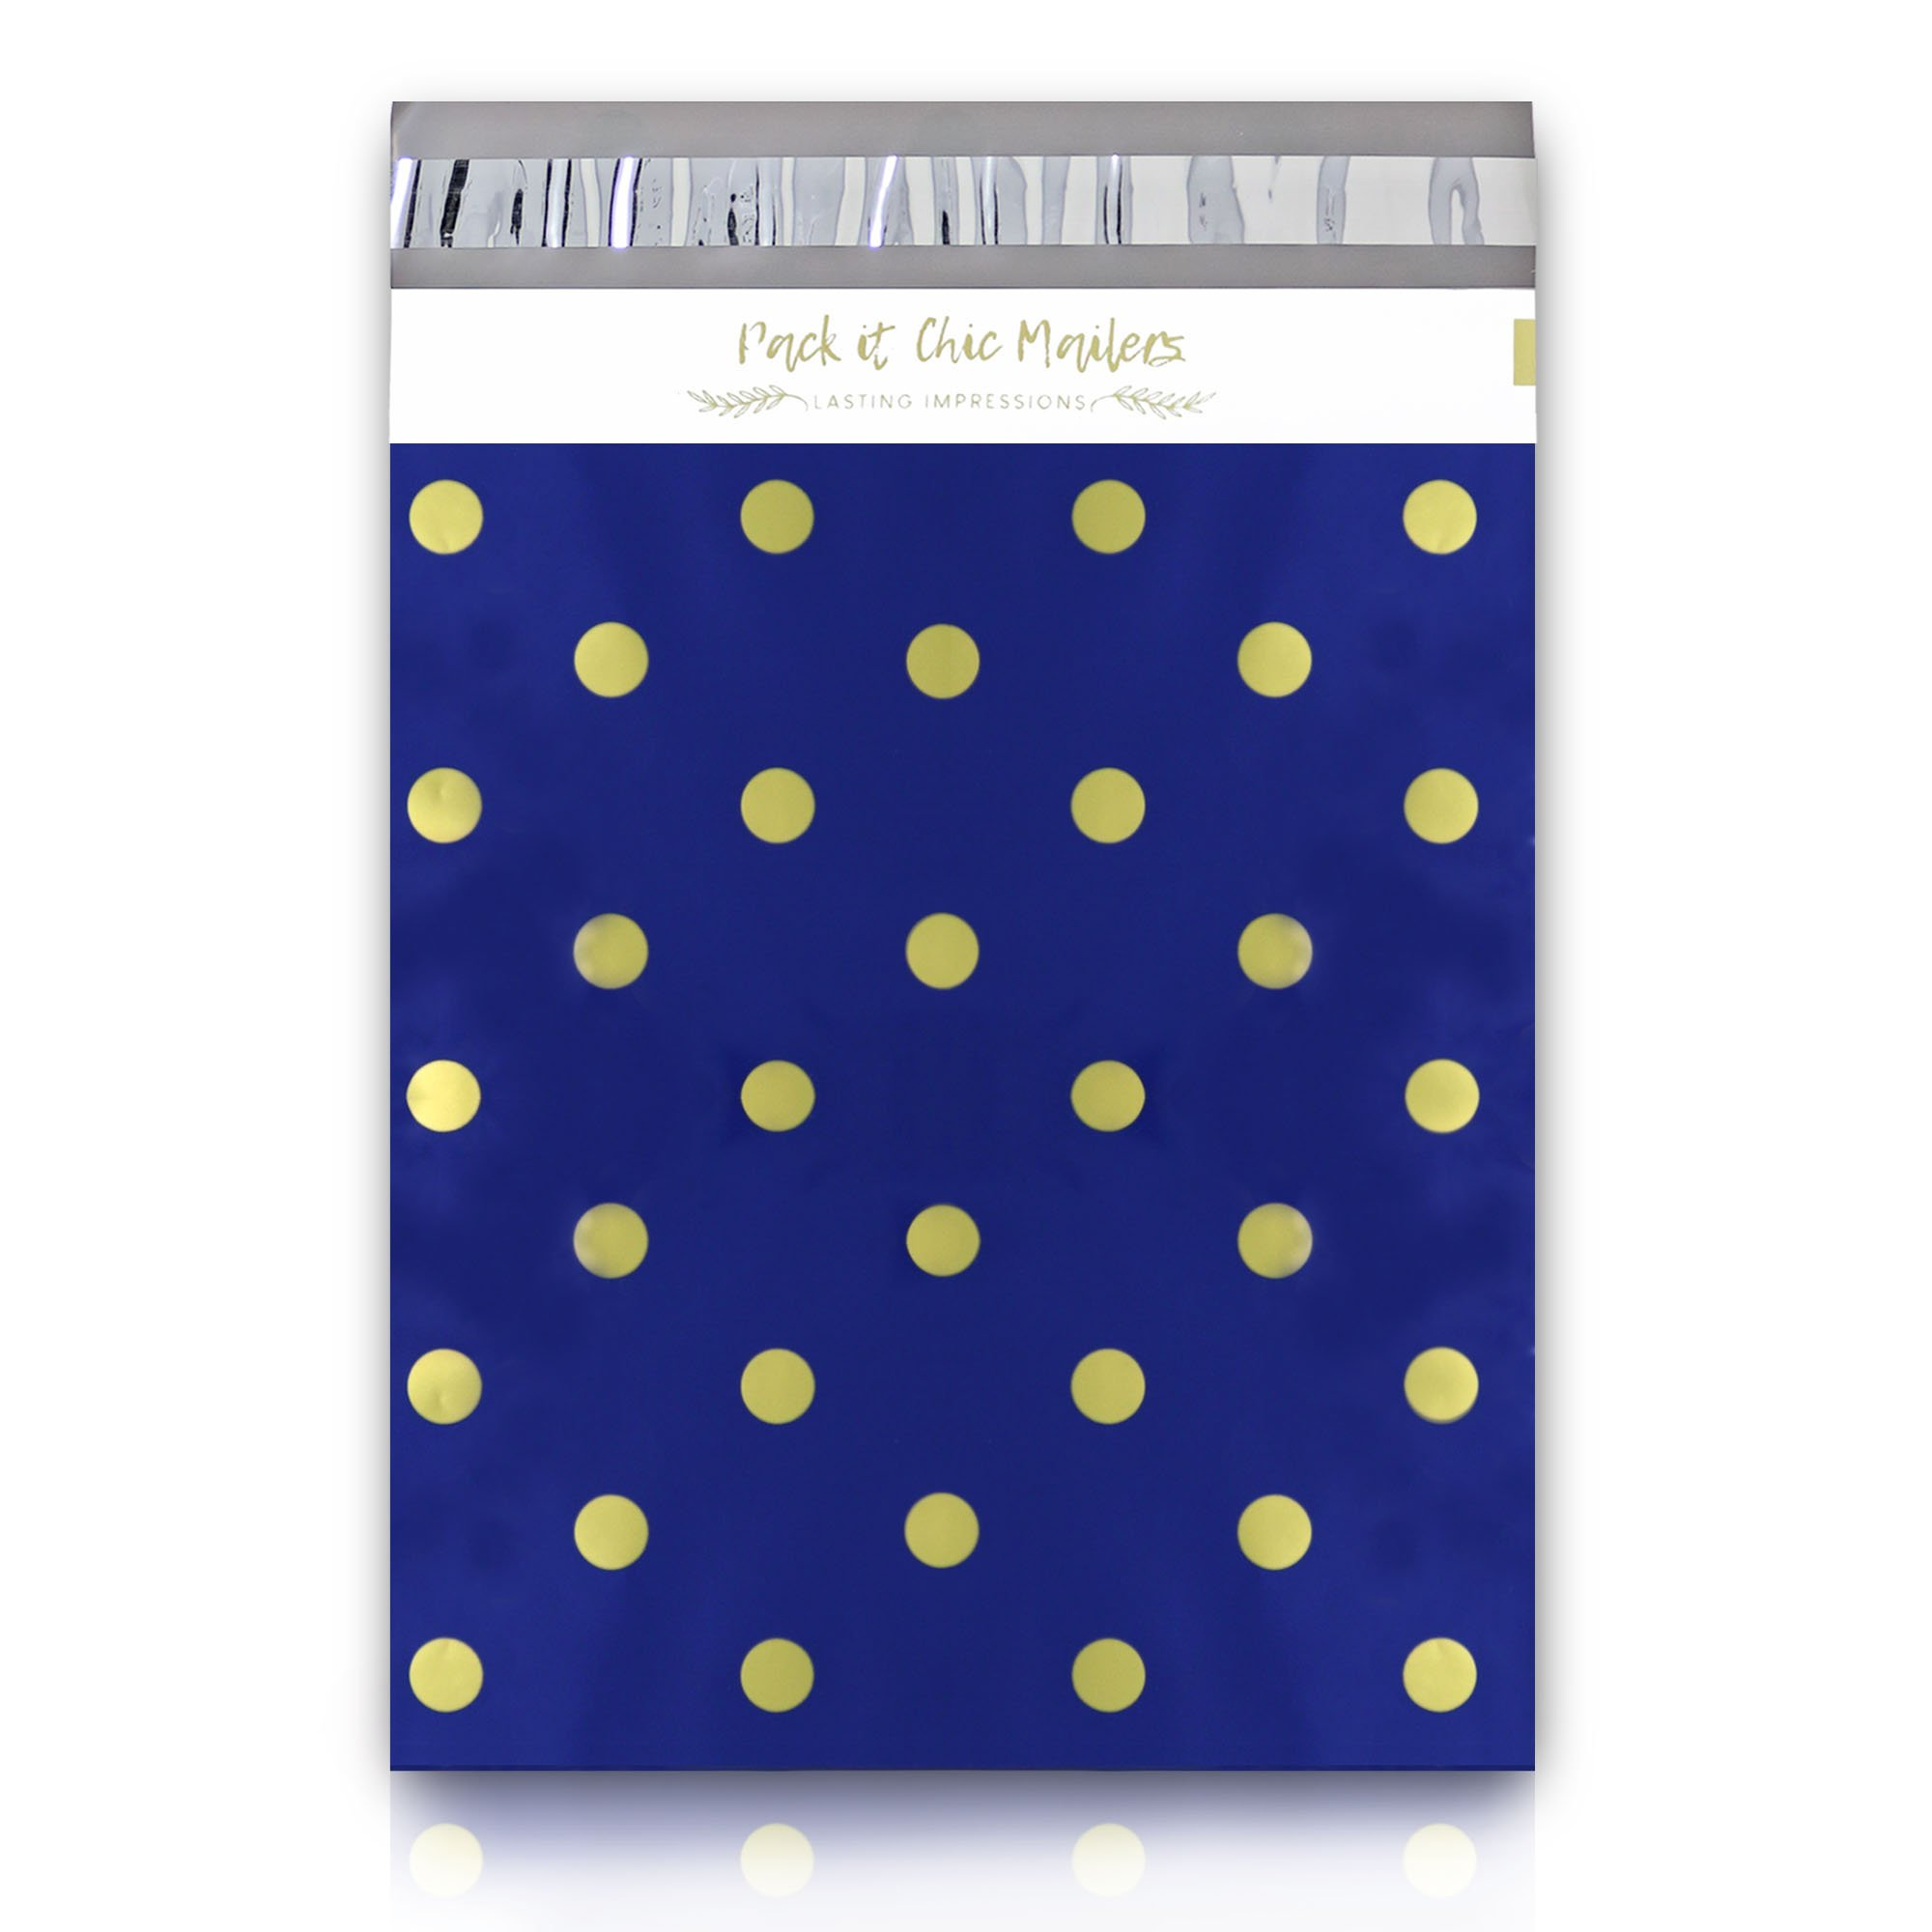 "[ 100-10"" X 13"" ] Navy Polka Dot - Thank You Design Custom Poly Mailer Envelope Shipping Bags, Tear Proof & Powerful Self Seal Adhesive Postal Bags (Other Designs Available) - Pack It Chic by Pack It Chic (Image #3)"